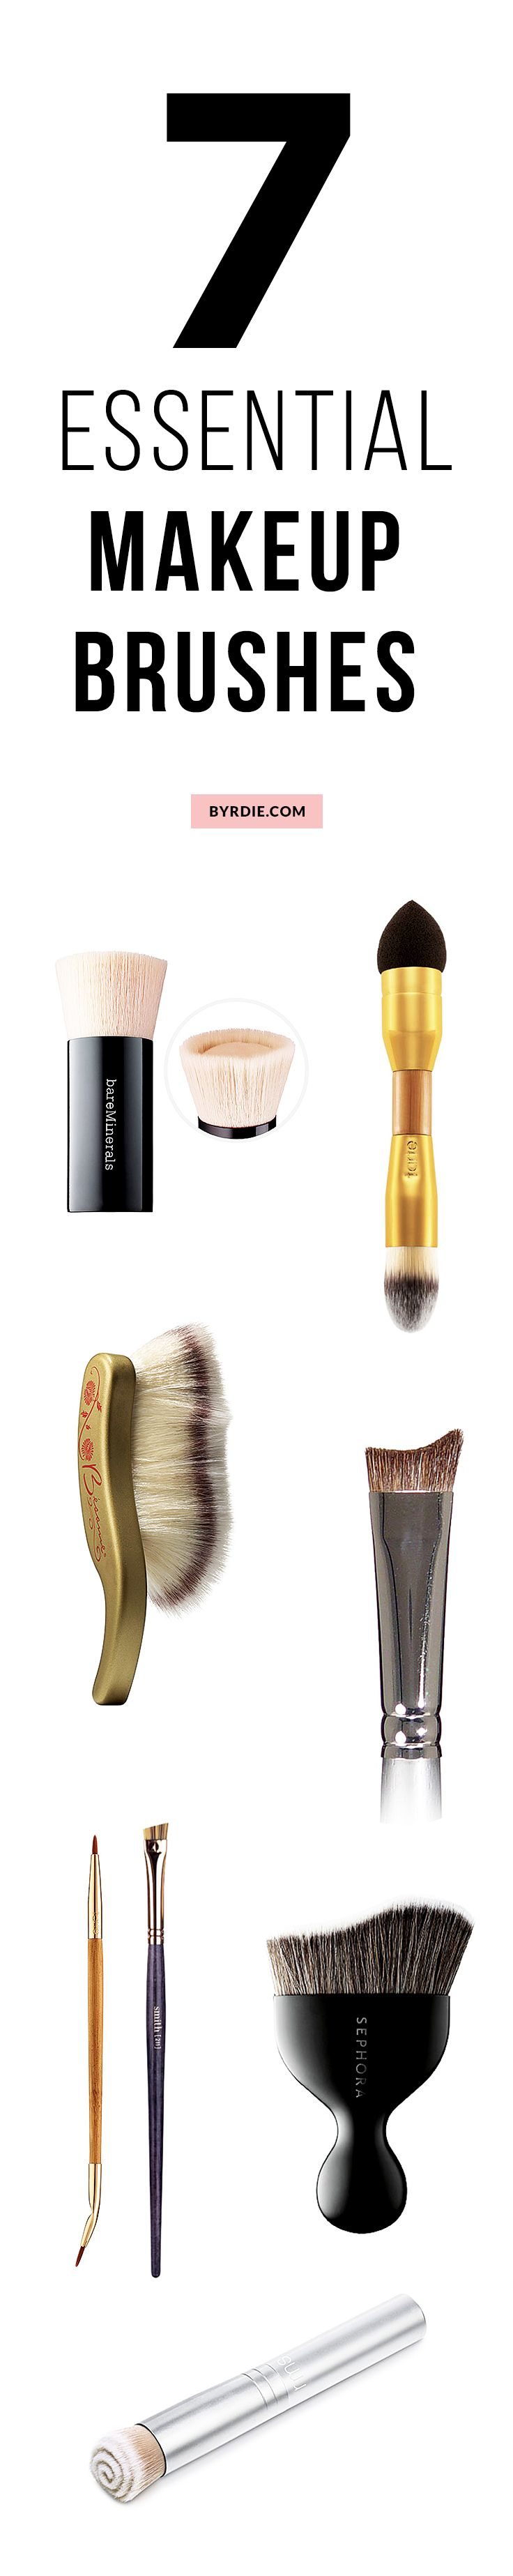 7 crazy-good makeup brushes to add to your bag